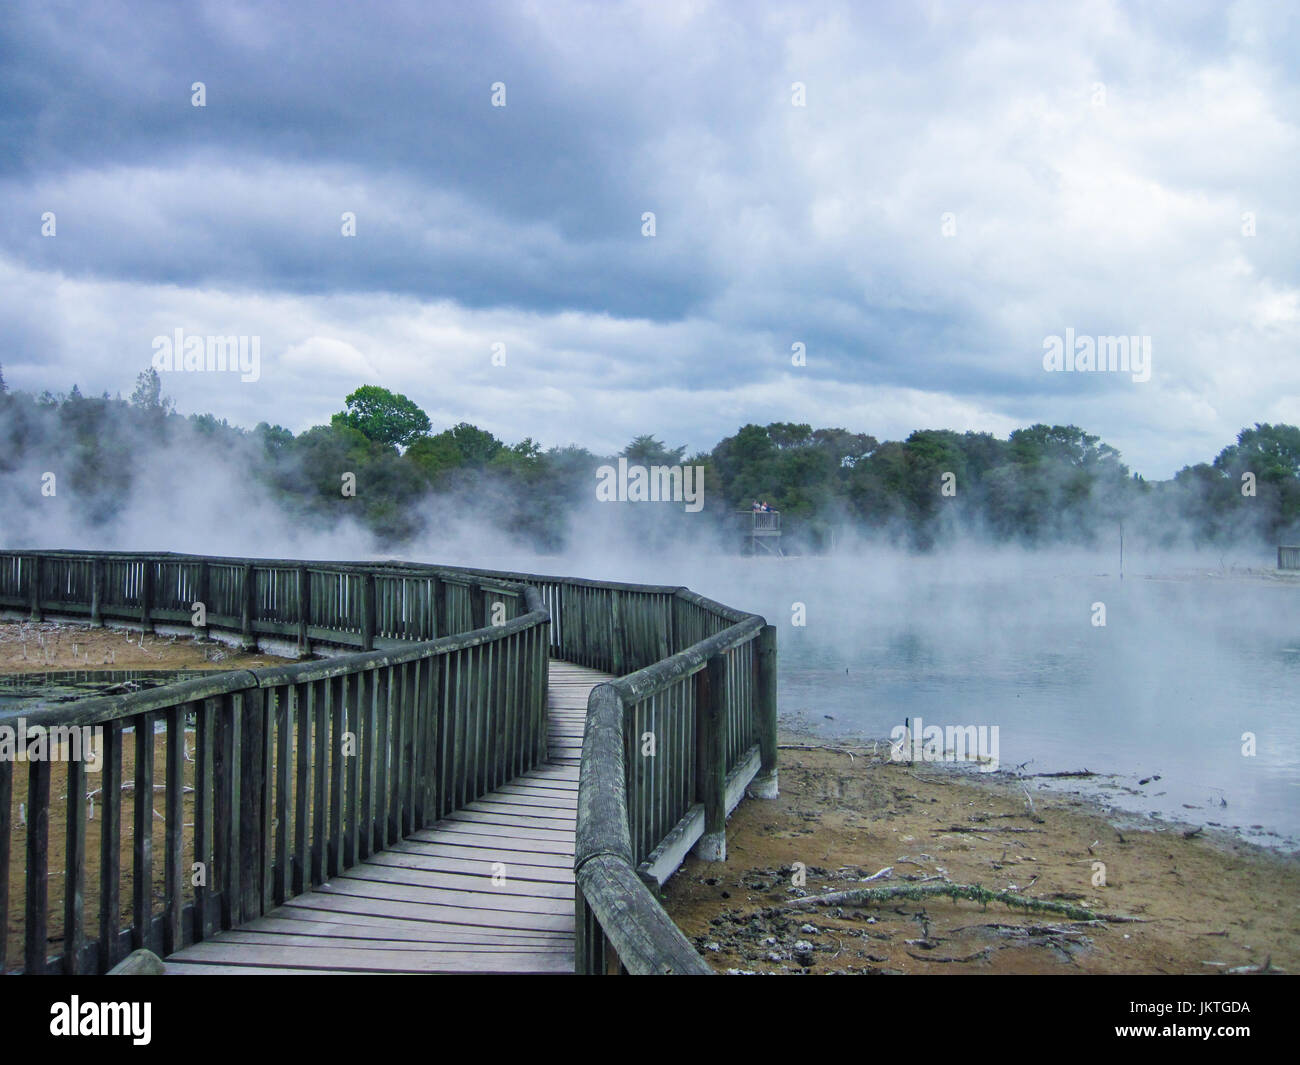 Wooden bridge travels through geothermal steam at Kuirau Park in Rotorua on an overcast day with dramatic clouds. - Stock Image